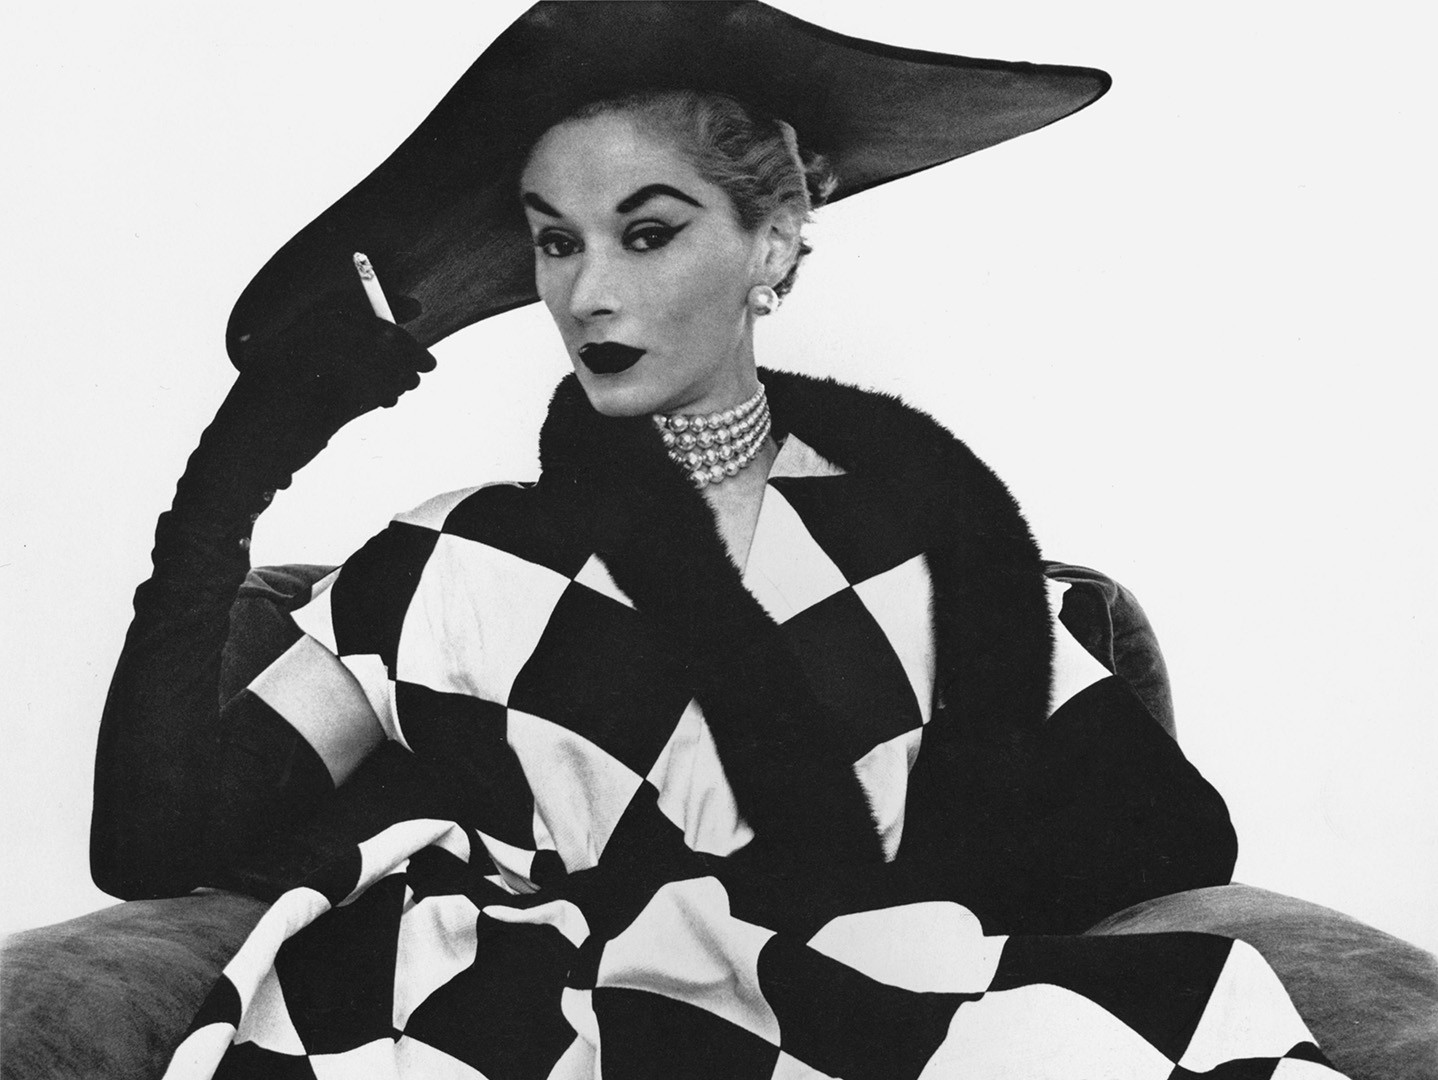 Irving Penn, Harlequin Dress (Lisa Fonssagrives-Penn), New York, 1950